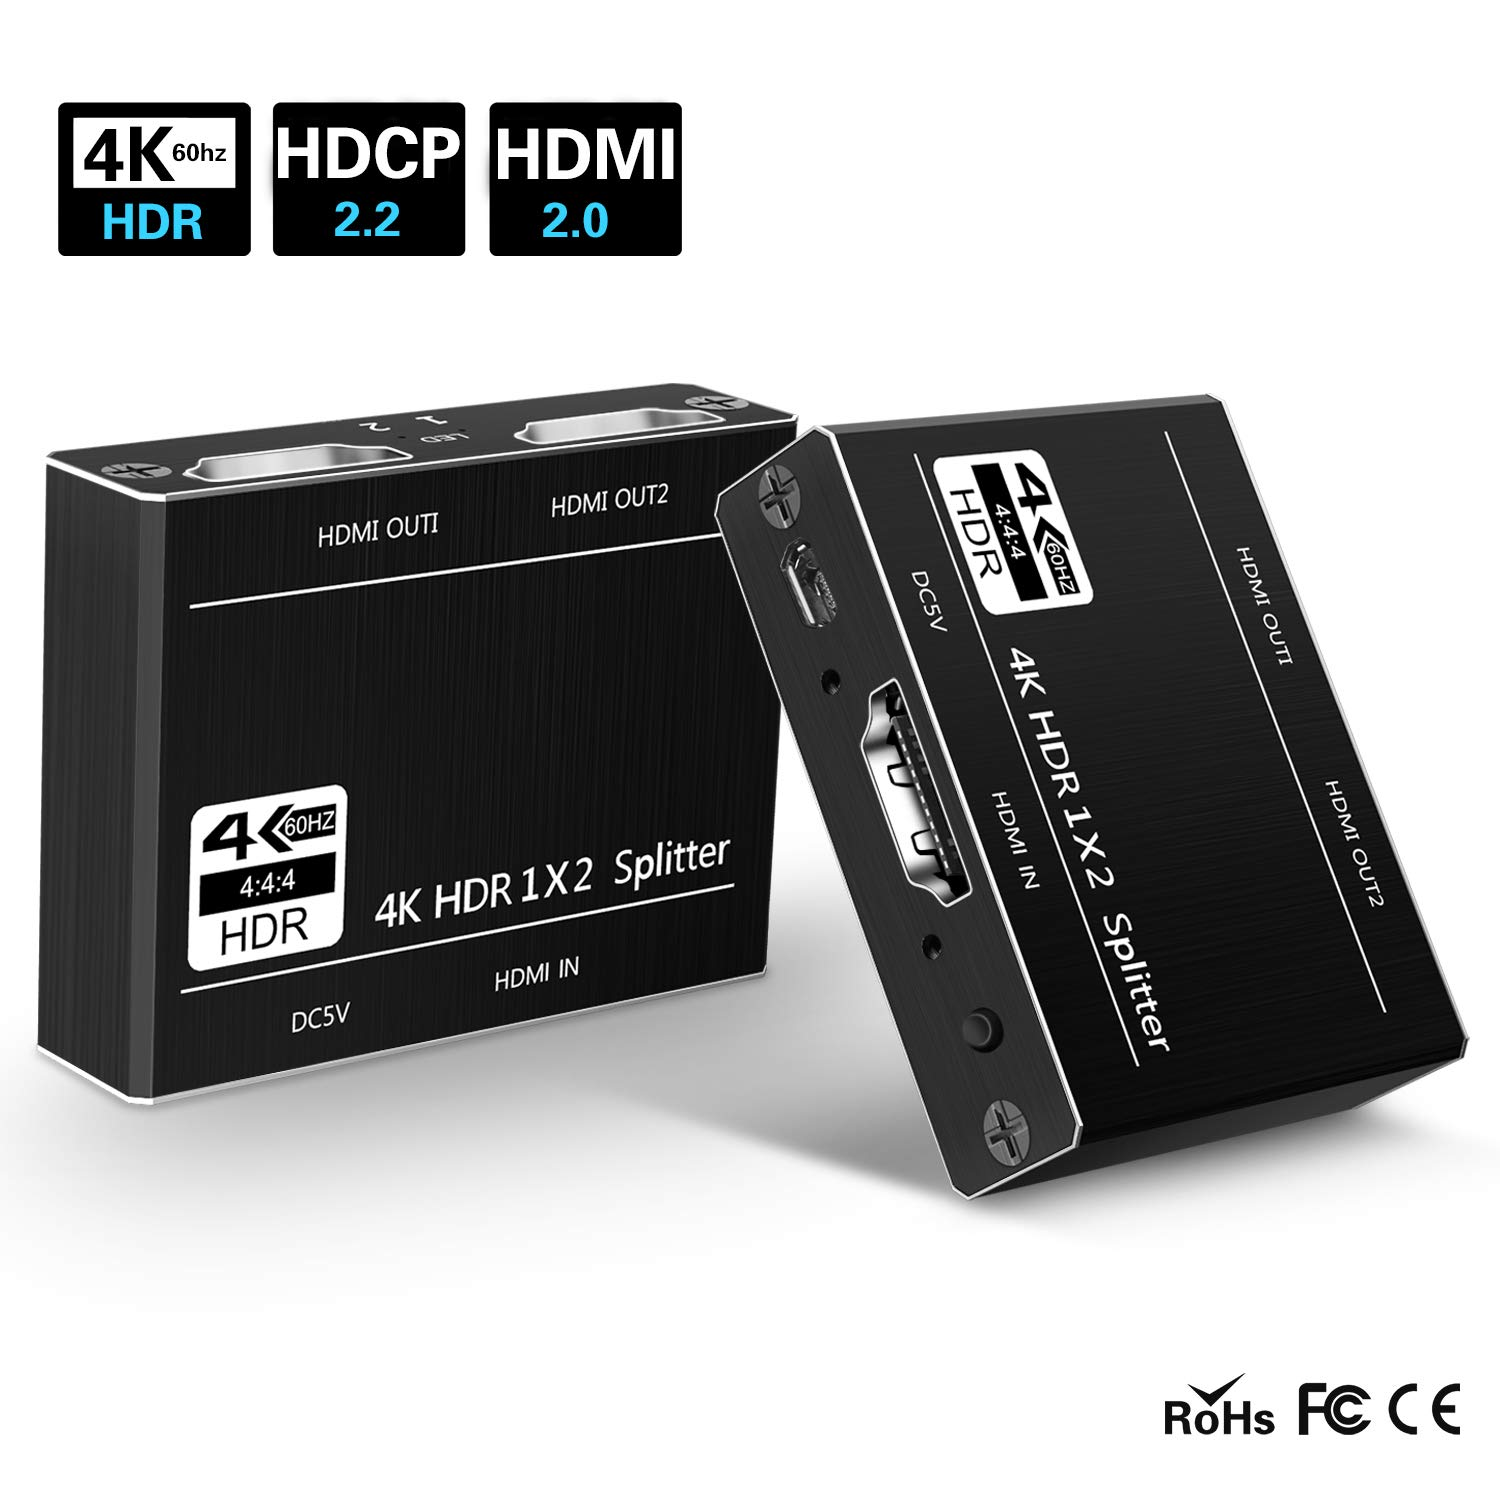 SOWTECH HDMI 2.0 Splitter Powered 1 in 2 Out HDMI Splitter 2160P 4Kx2K@60Hz RGB/HDCP 2.2 / 3D and HDR for Dual Monitor Duplicating Video and Audio by SOWTECH (Image #1)